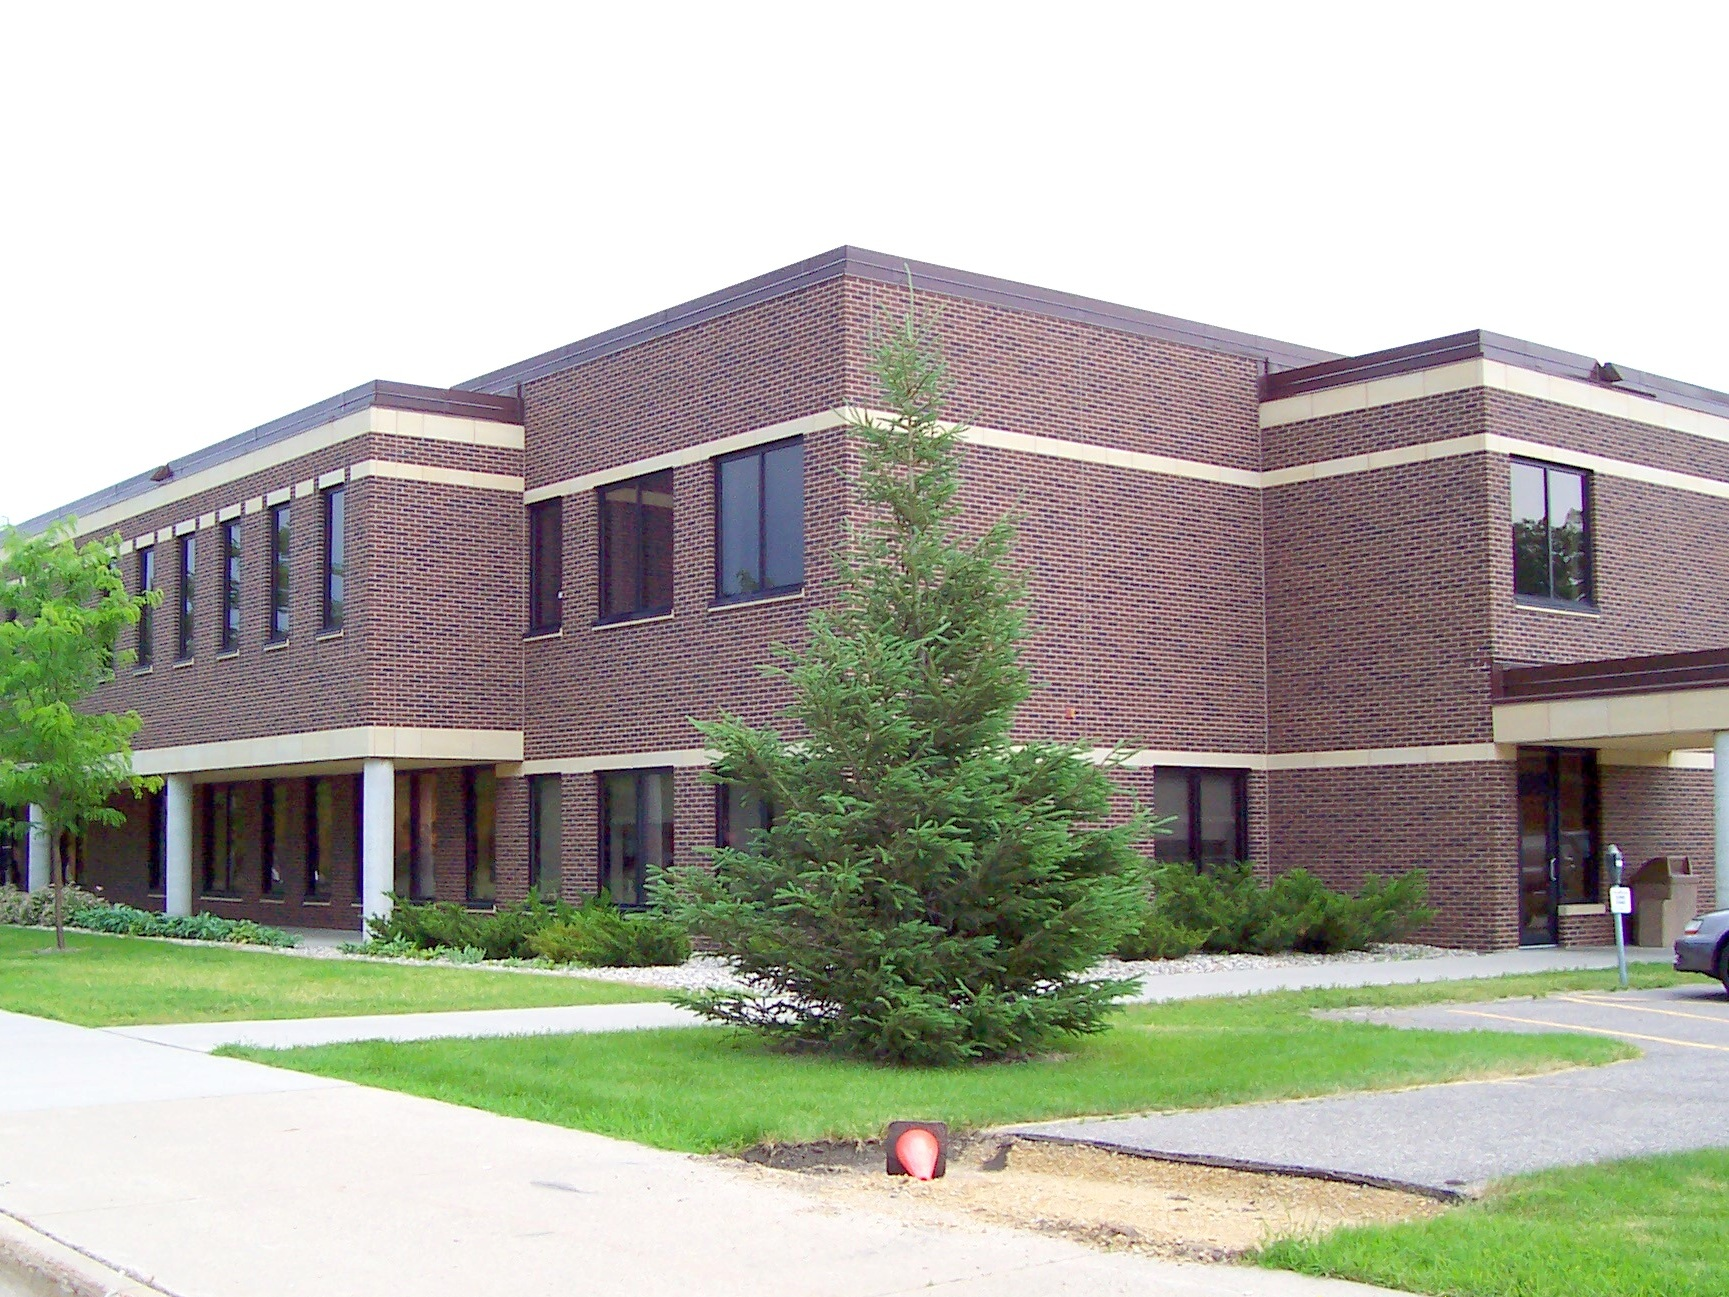 Outside view of an industrial/ municipal example